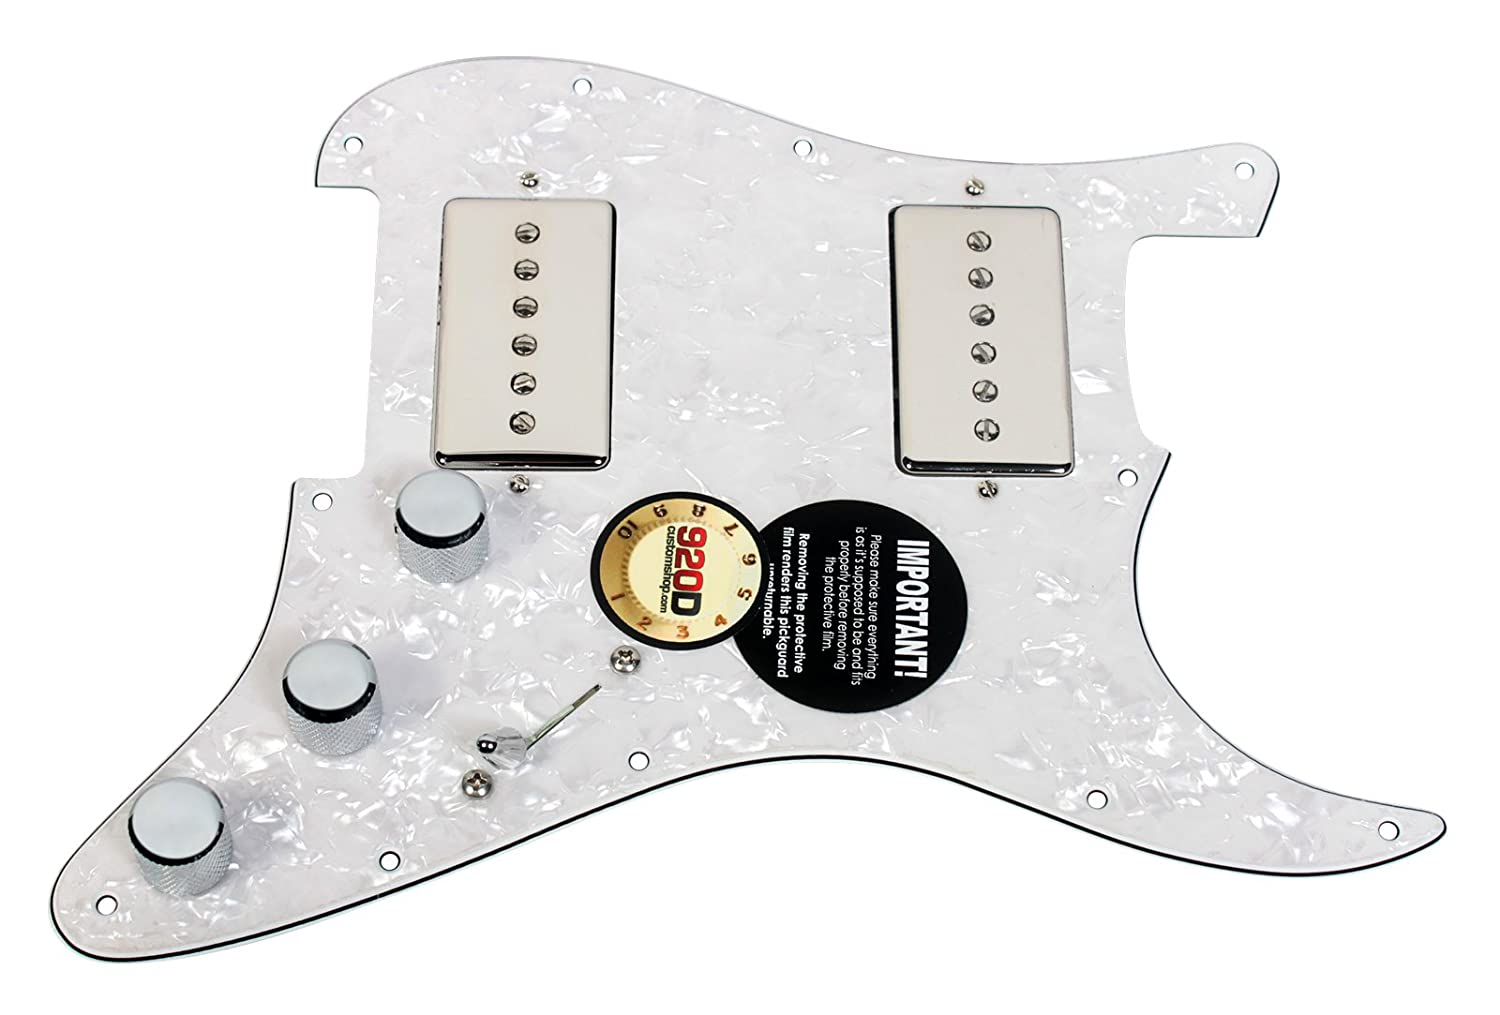 amazon com: 920d loaded hh pickguard fender strat duncan phat cat, nickel -  white pearl: musical instruments